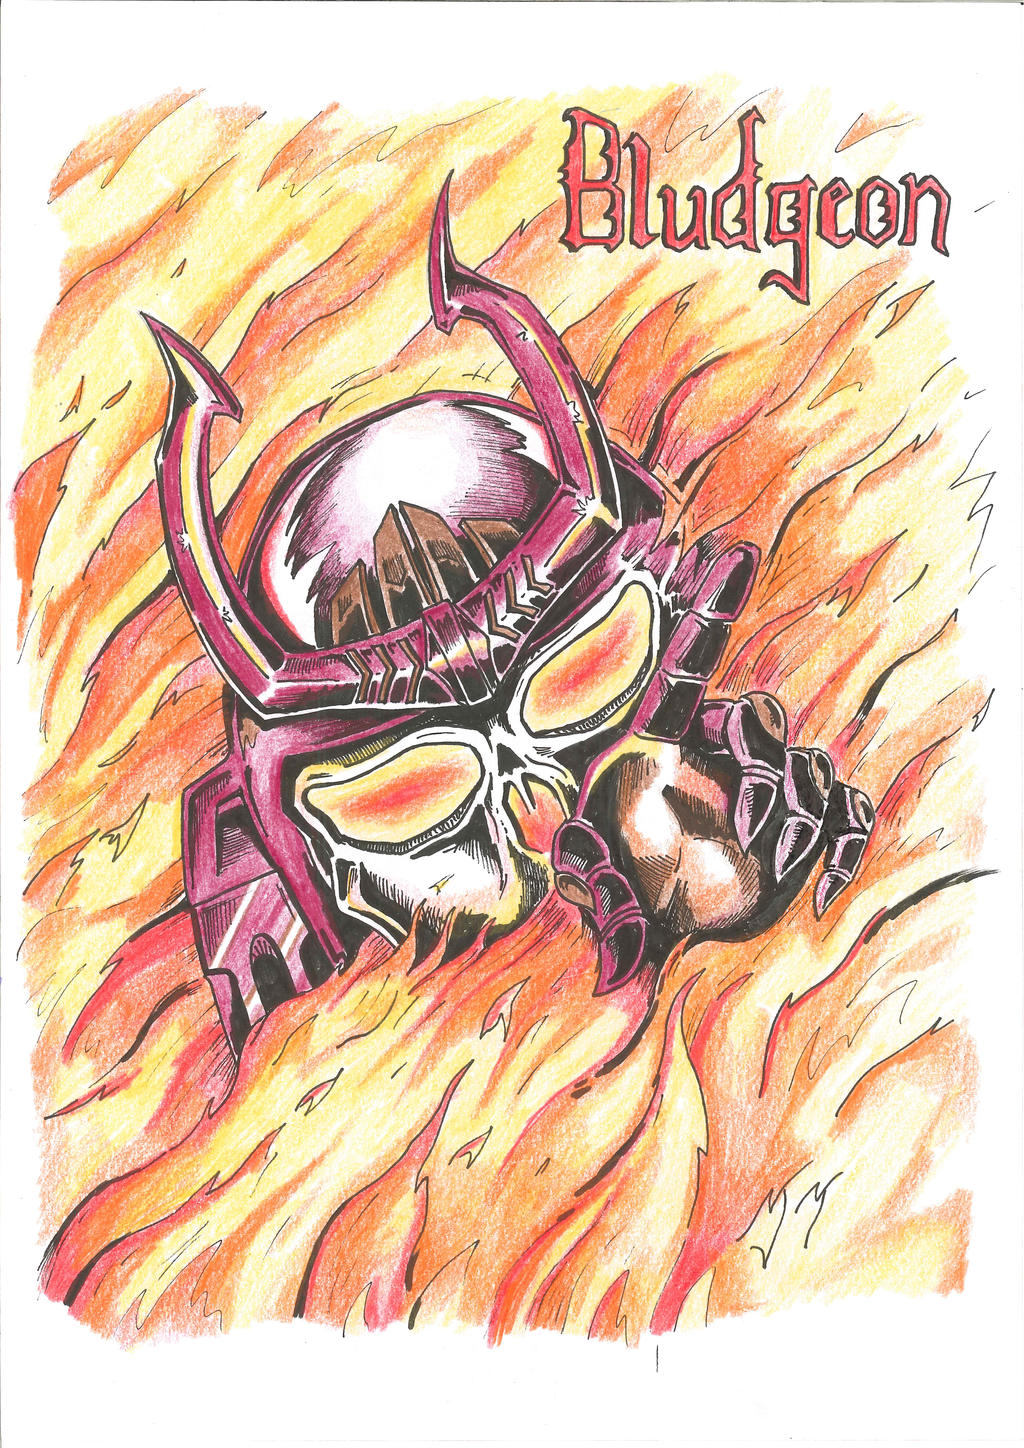 Bludgeon - Mercyful Fate Cover (colours)